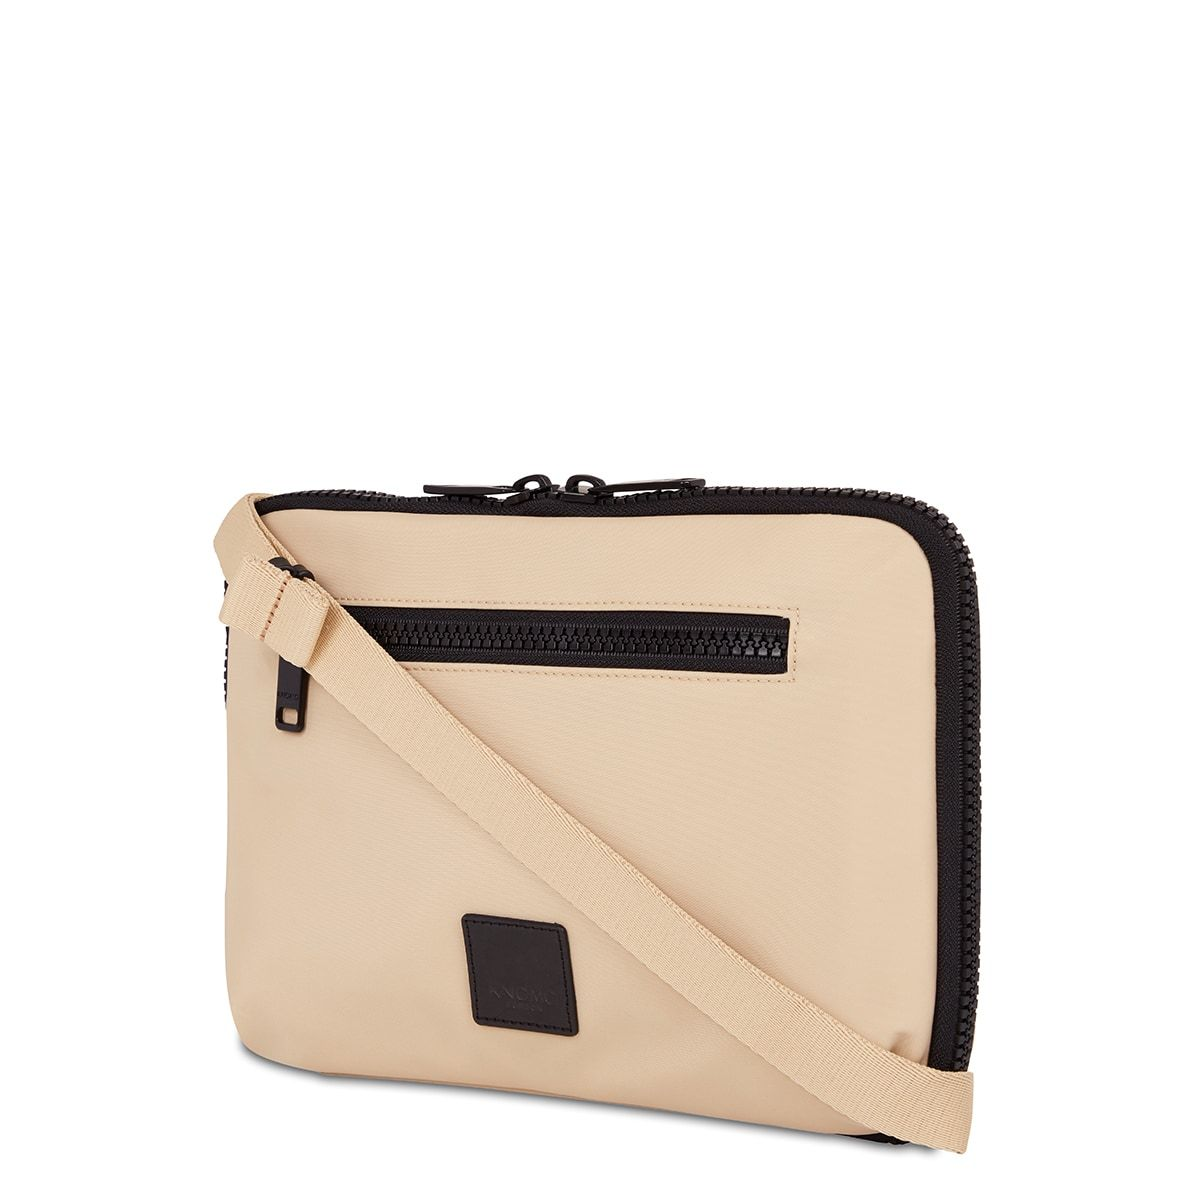 "KNOMO Fulham Knomad X-Body Organiser Tech Organiser Three Quarter View With Strap 10.5"" -  Trench Beige 